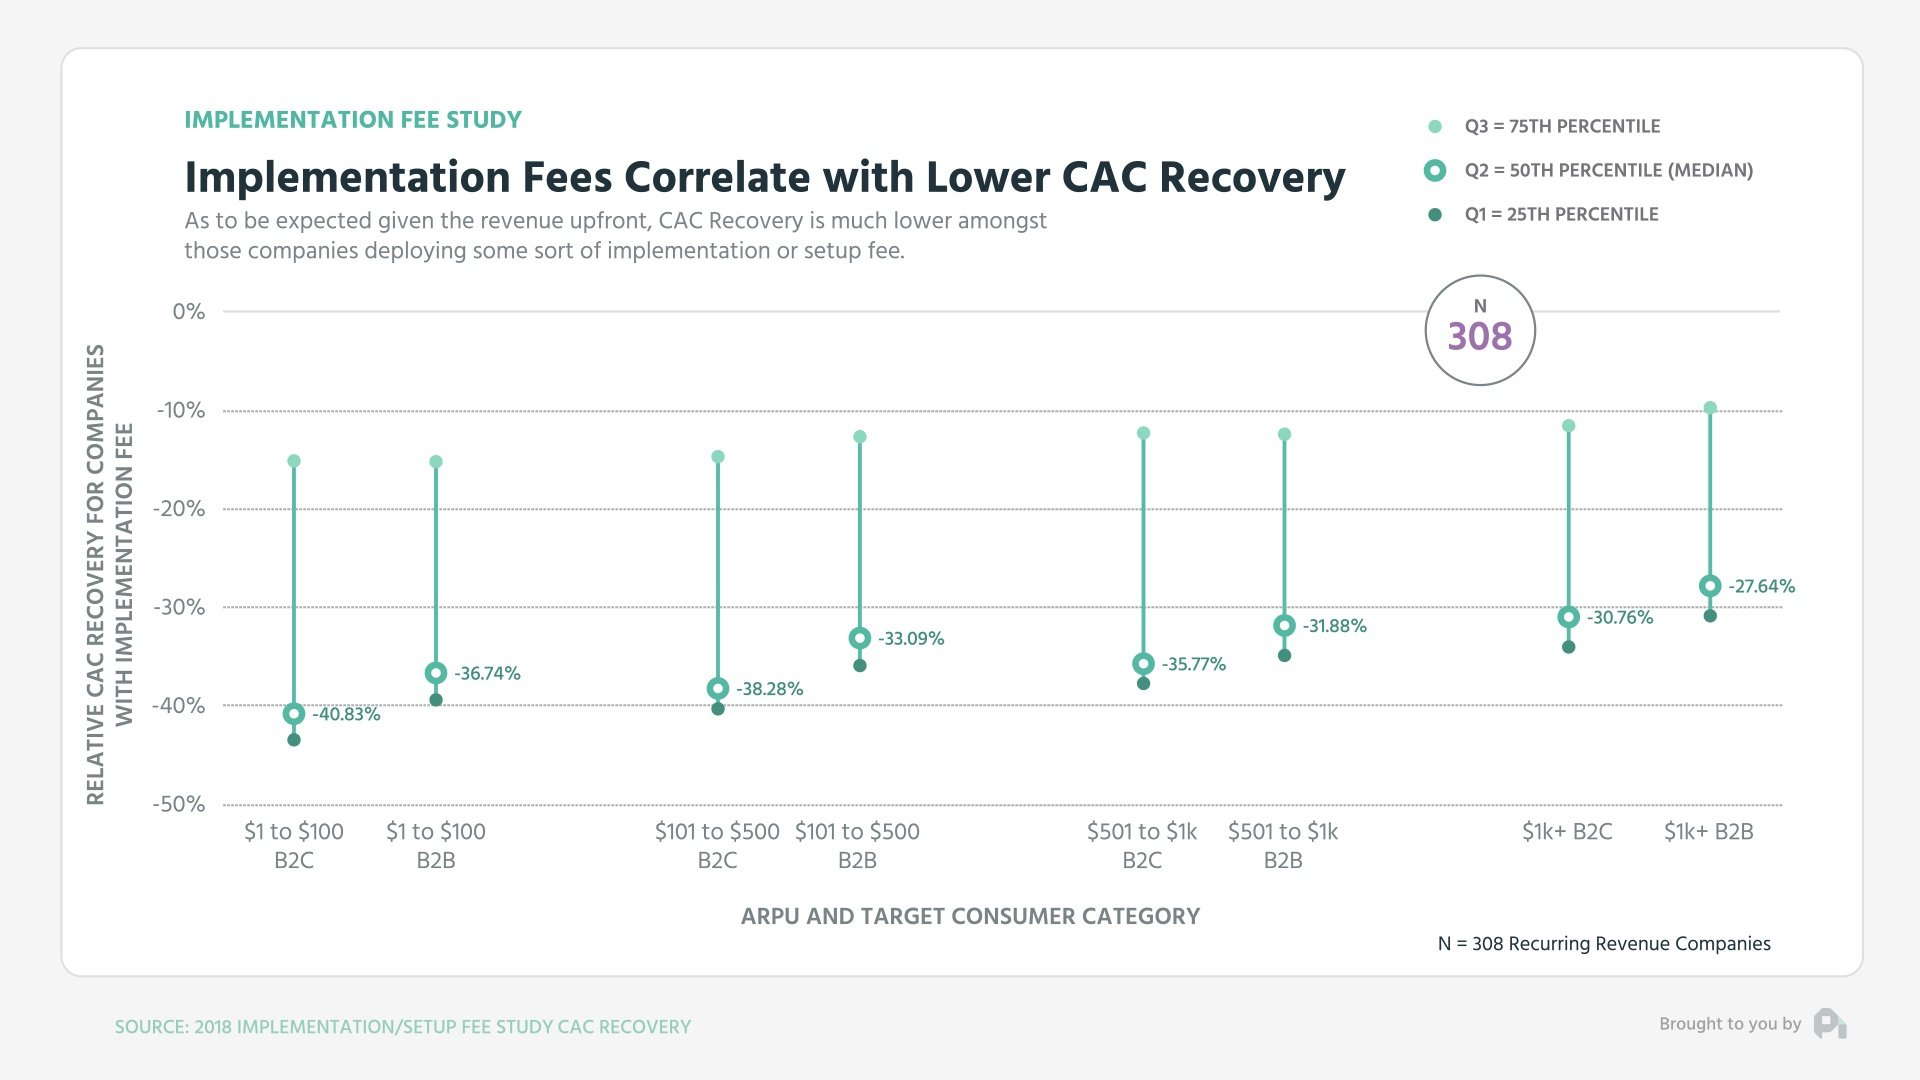 Implementation Fees Correlate with Lower CAC Recovery